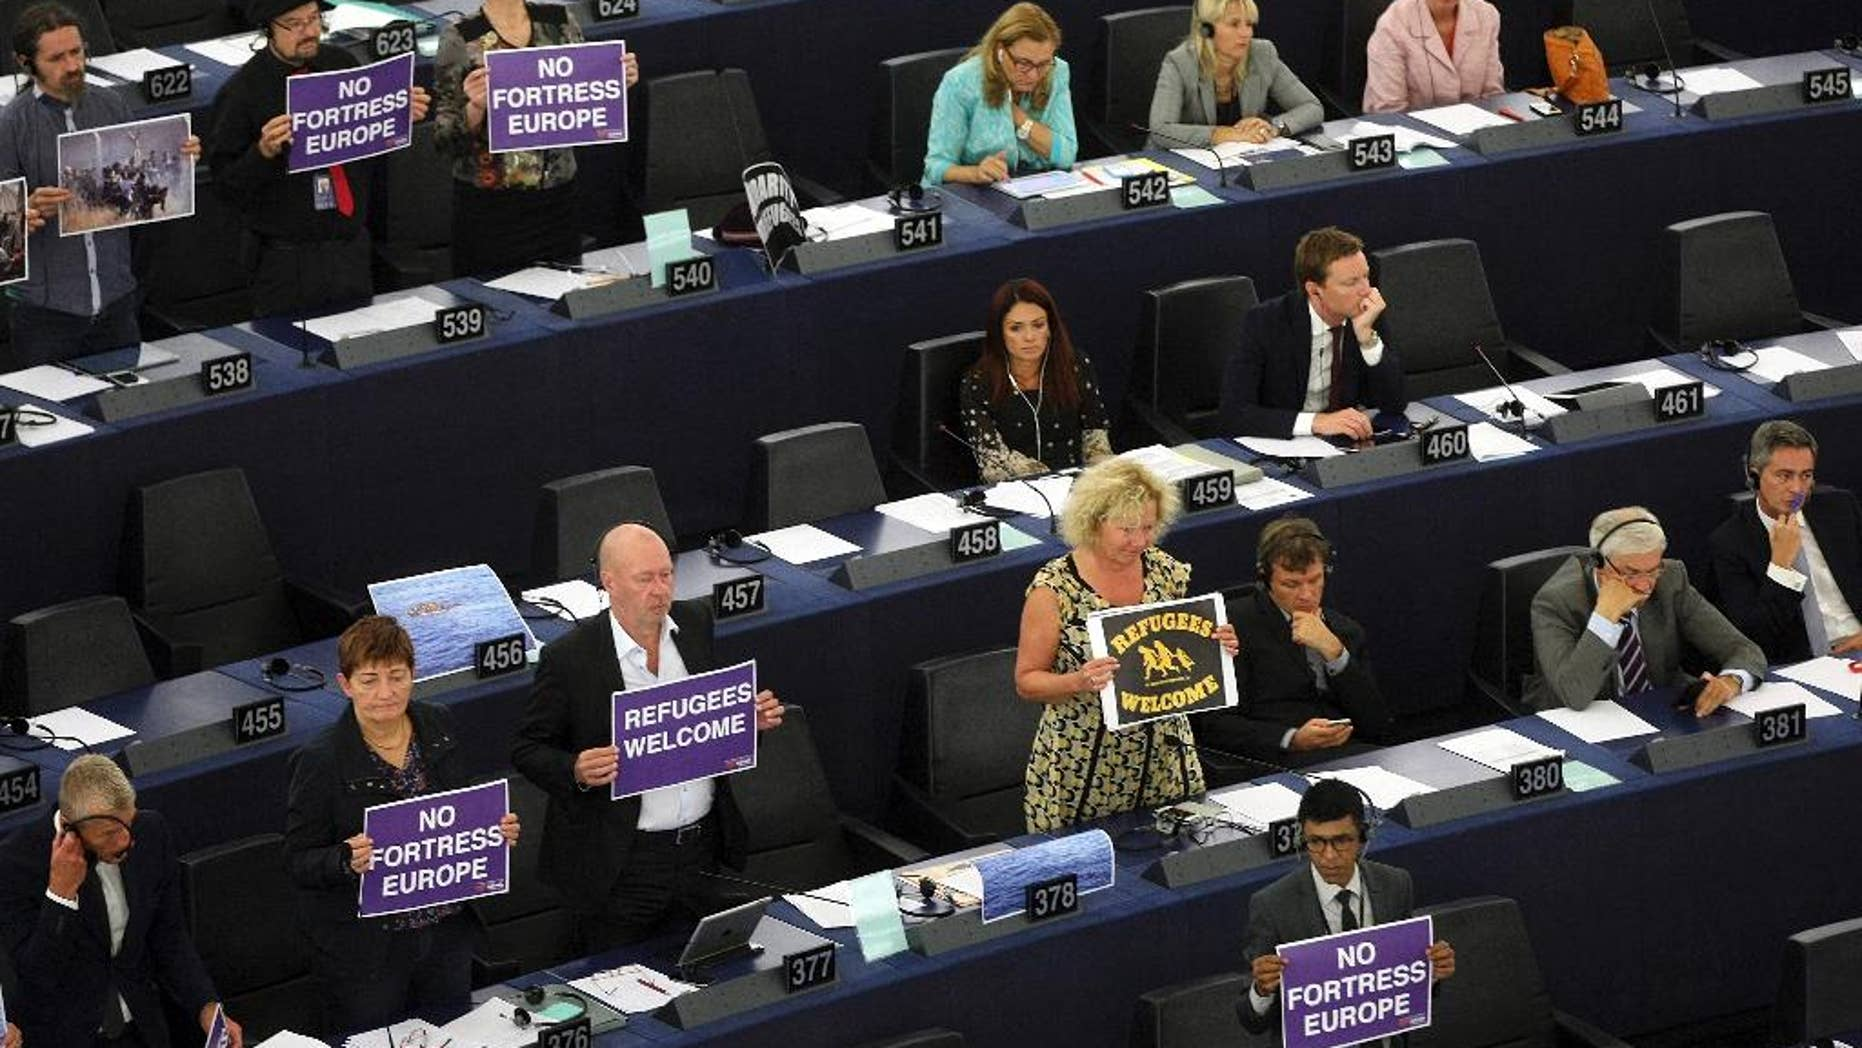 Parliament members holds posters while European Commission President Jean-Claude Juncker delivers his State of the Union address at the European Parliament in Strasbourg, eastern France, Wednesday, Sept.9, 2015. Juncker called on EU countries to agree by next week to share 160,000 refugees, warning that Greece, Italy and Hungary can no longer cope alone. (AP Photo/Christian Lutz)